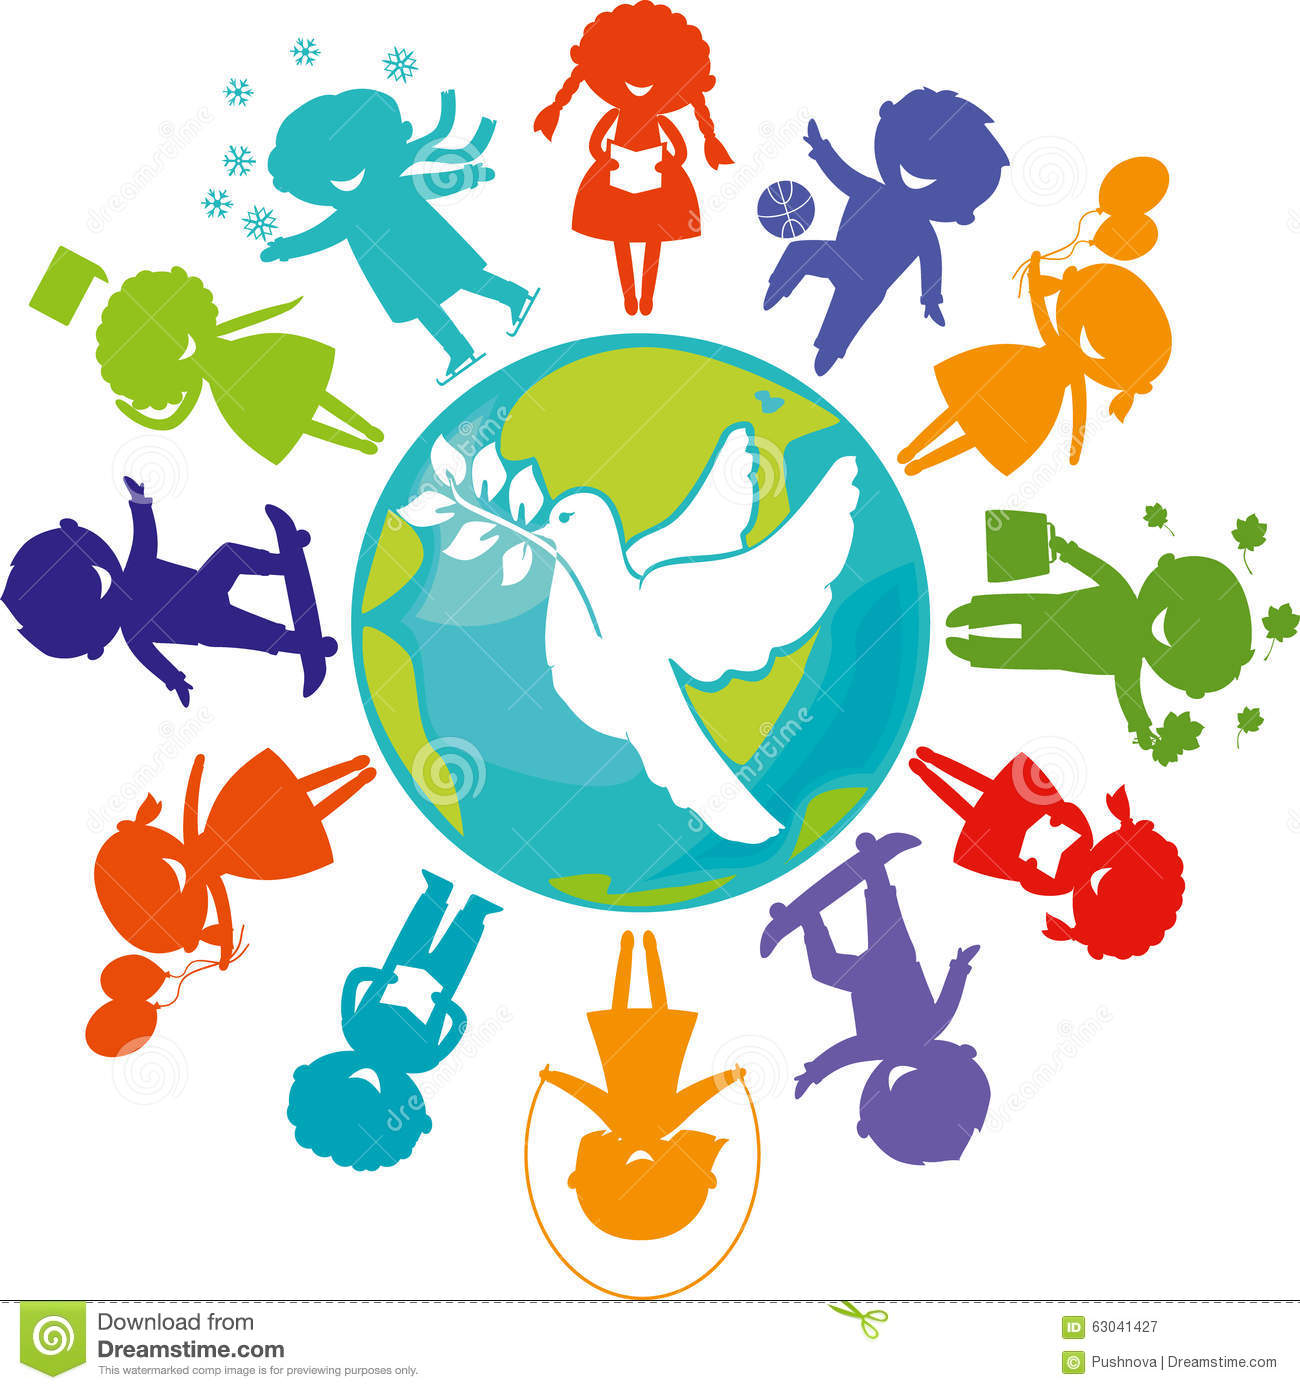 A Dove Children And The World Stock Vector Illustration Of Cute